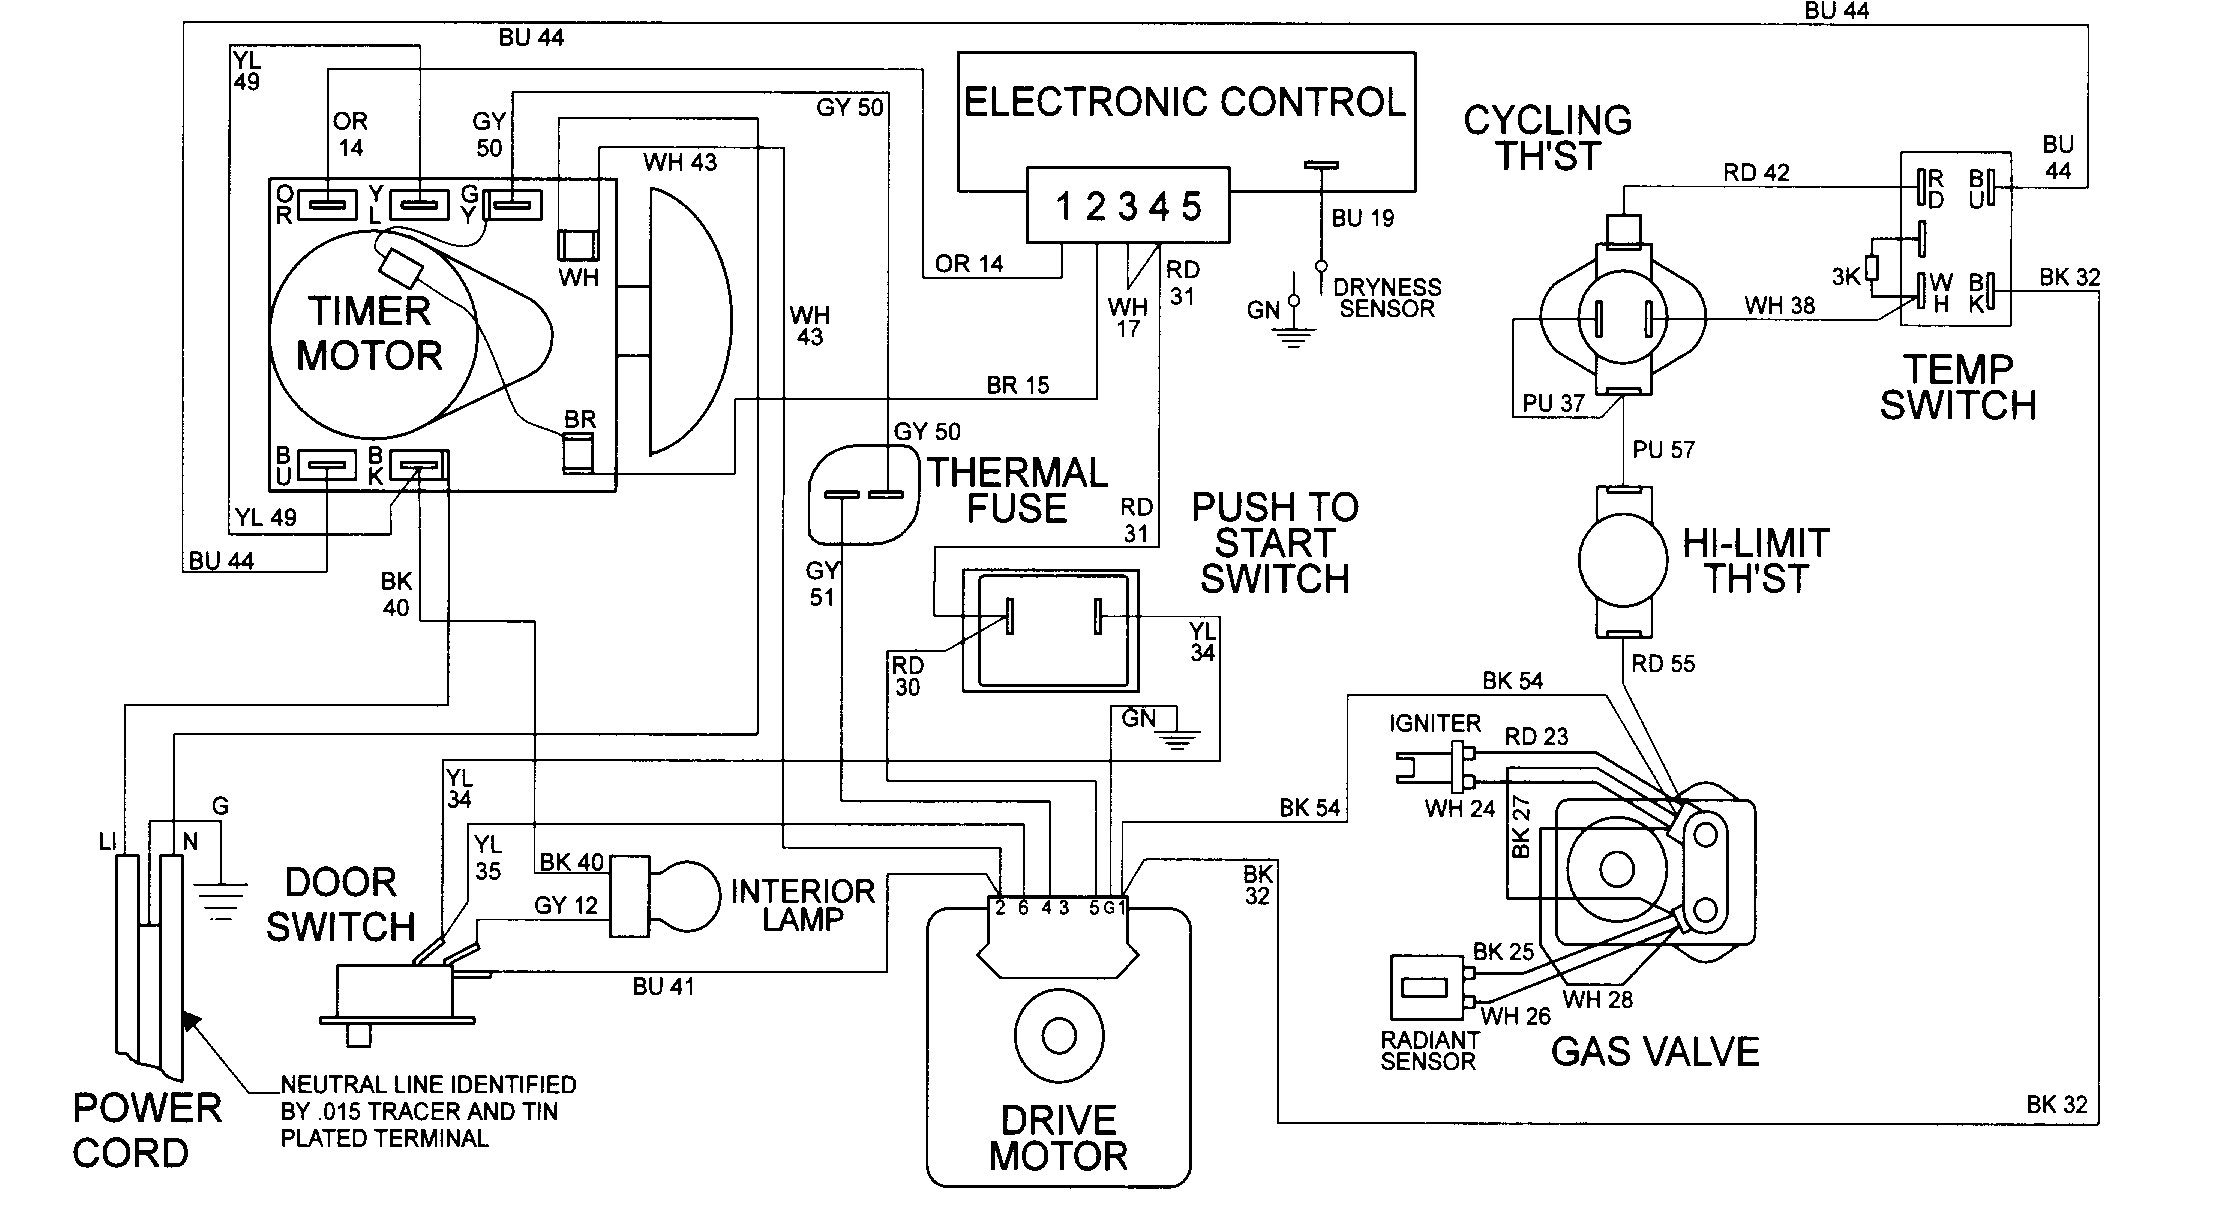 Kenmore Dryer Wiring Diagram Maytag Dryer Wiring Diagram Fitfathers Me Beauteous Wire Blurts Of Kenmore Dryer Wiring Diagram